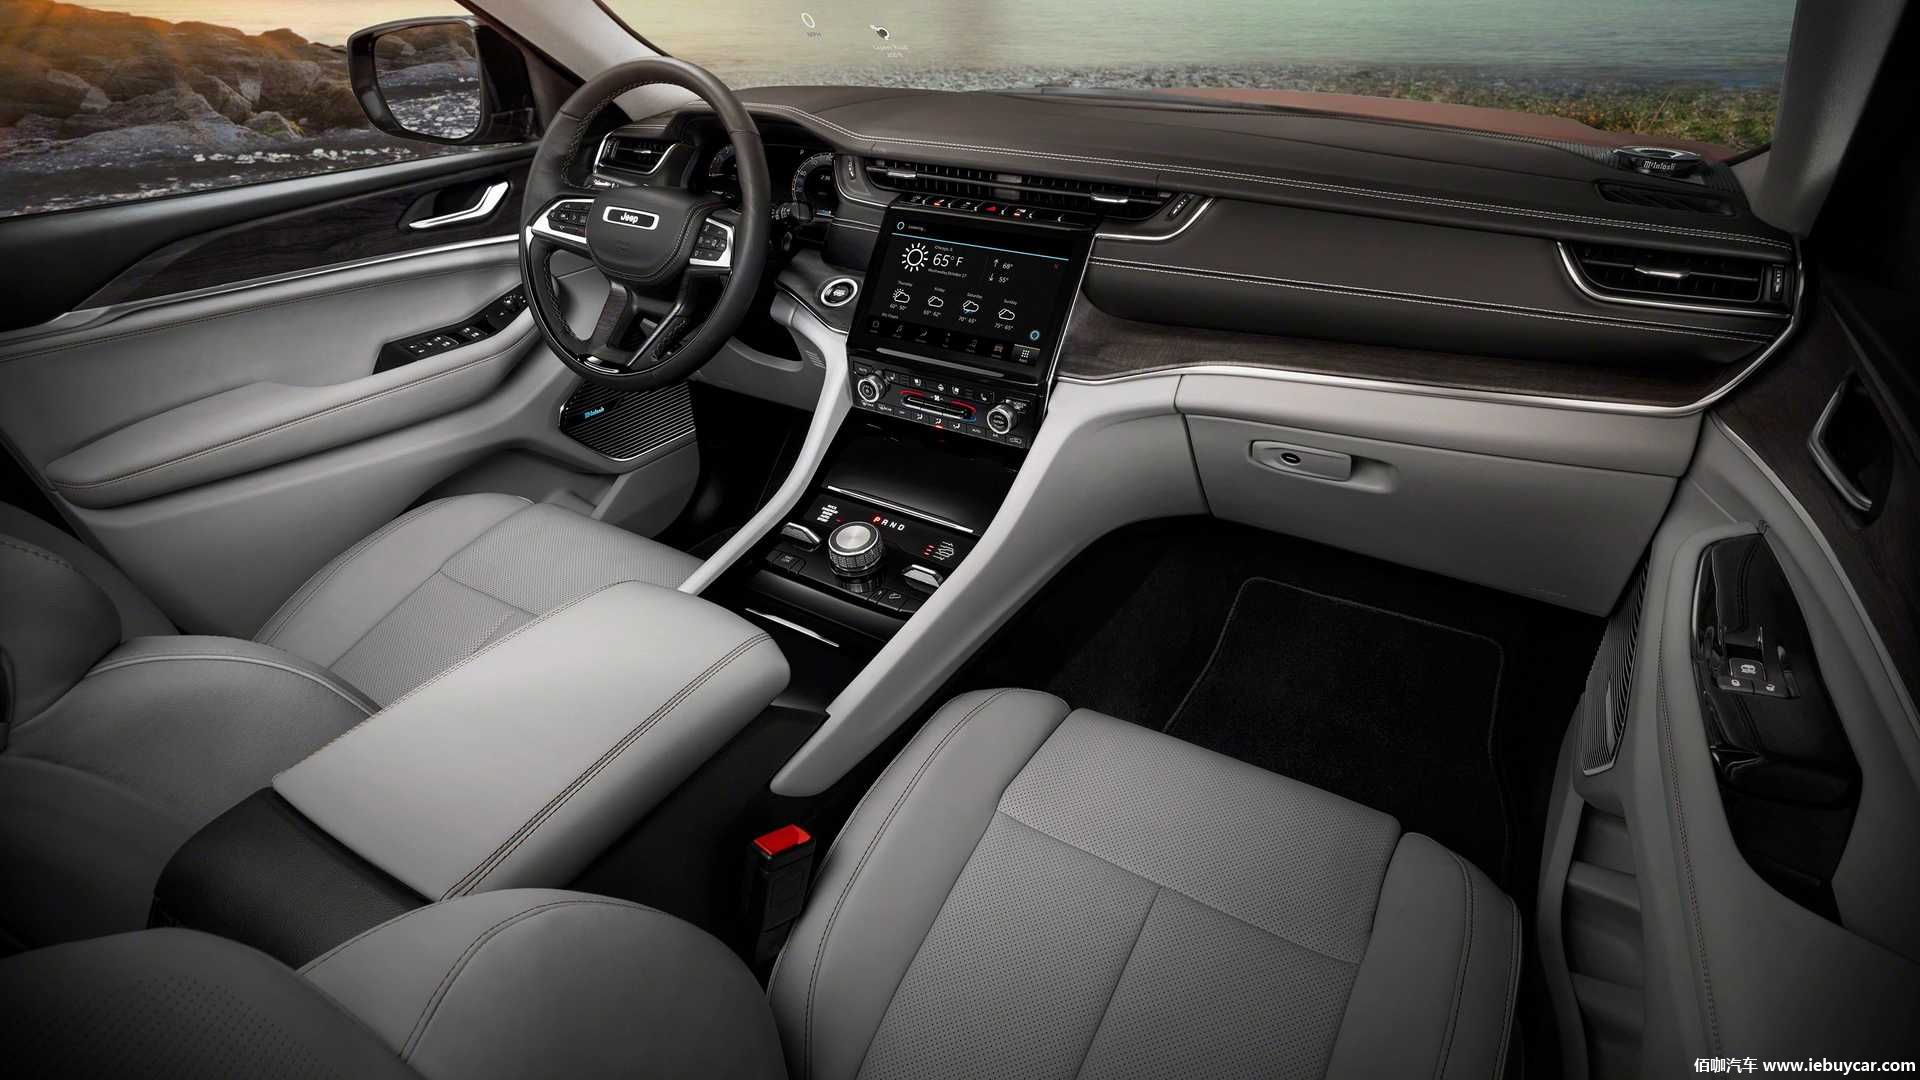 2021-jeep-grand-cherokee-l-interior (1).jpg